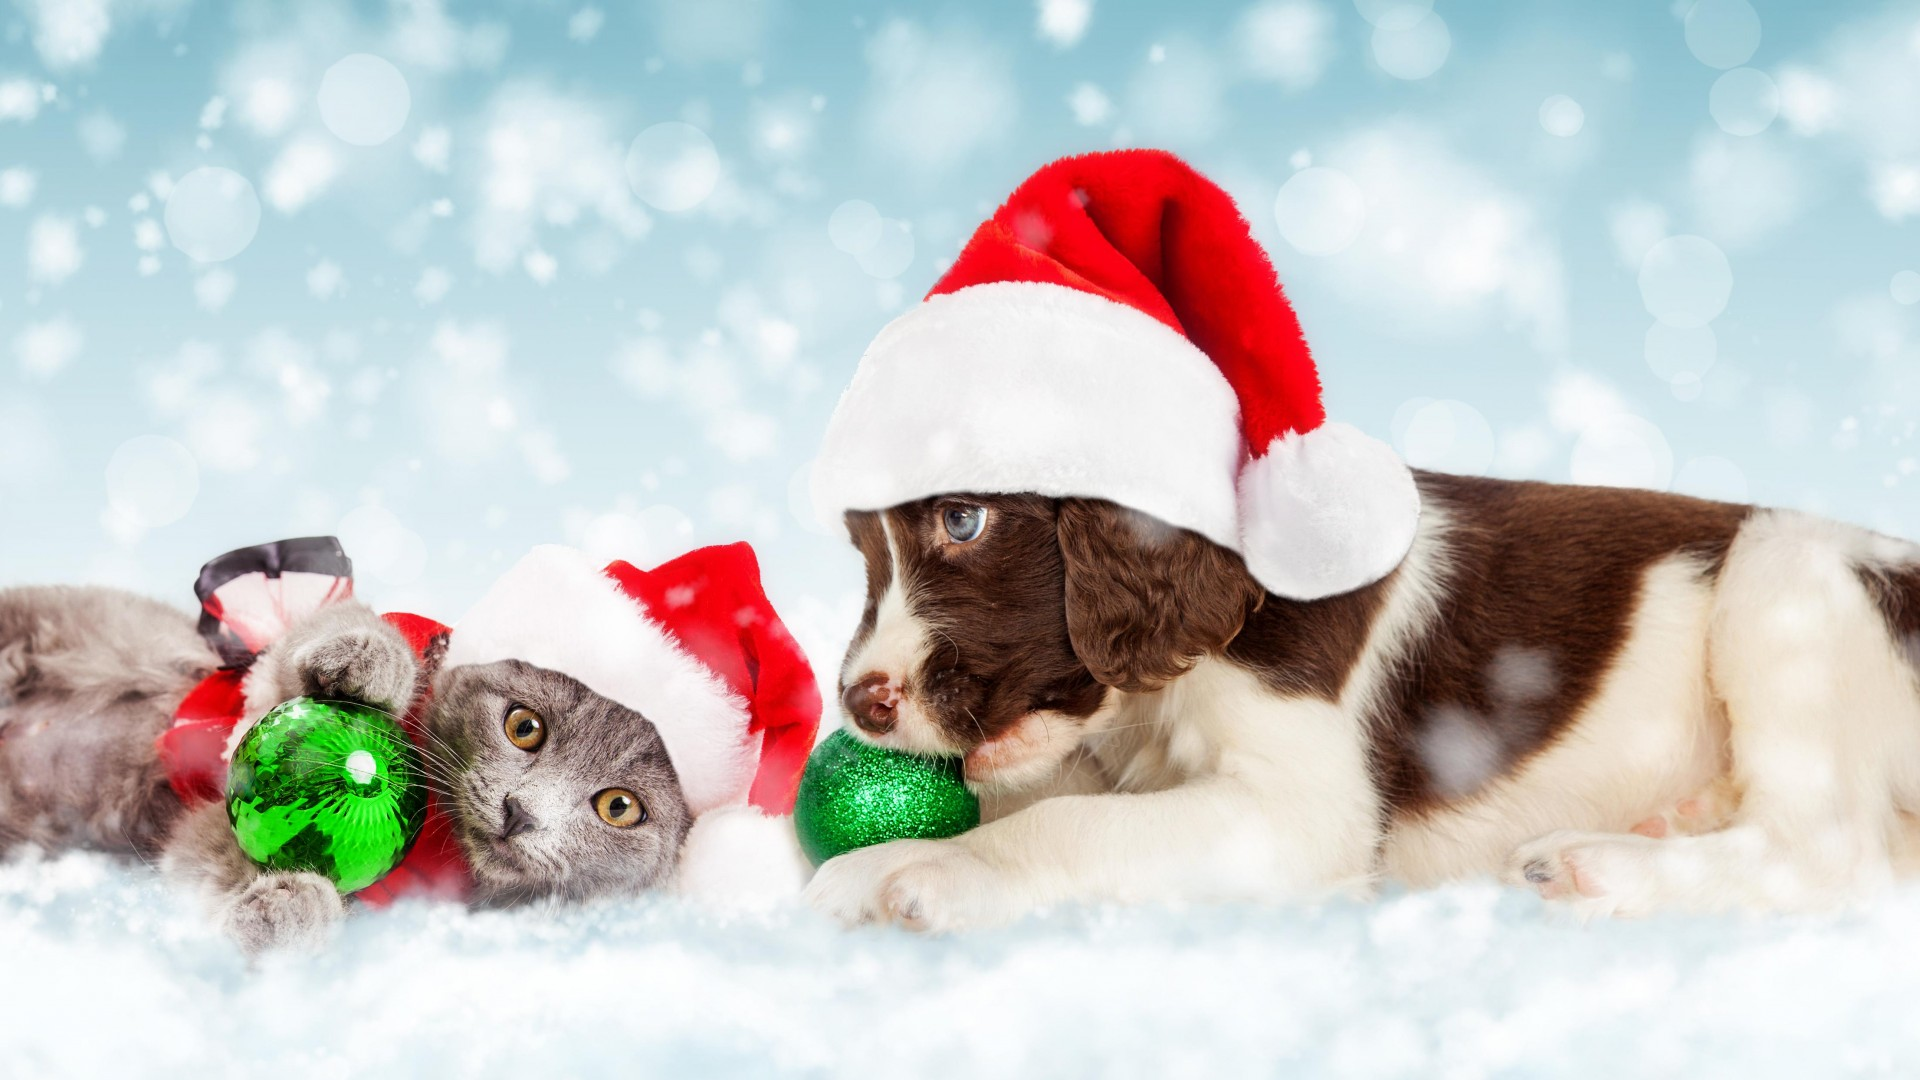 Cute Christmas Puppies.Wallpaper Christmas New Year Snow Puppy Kitten Cute